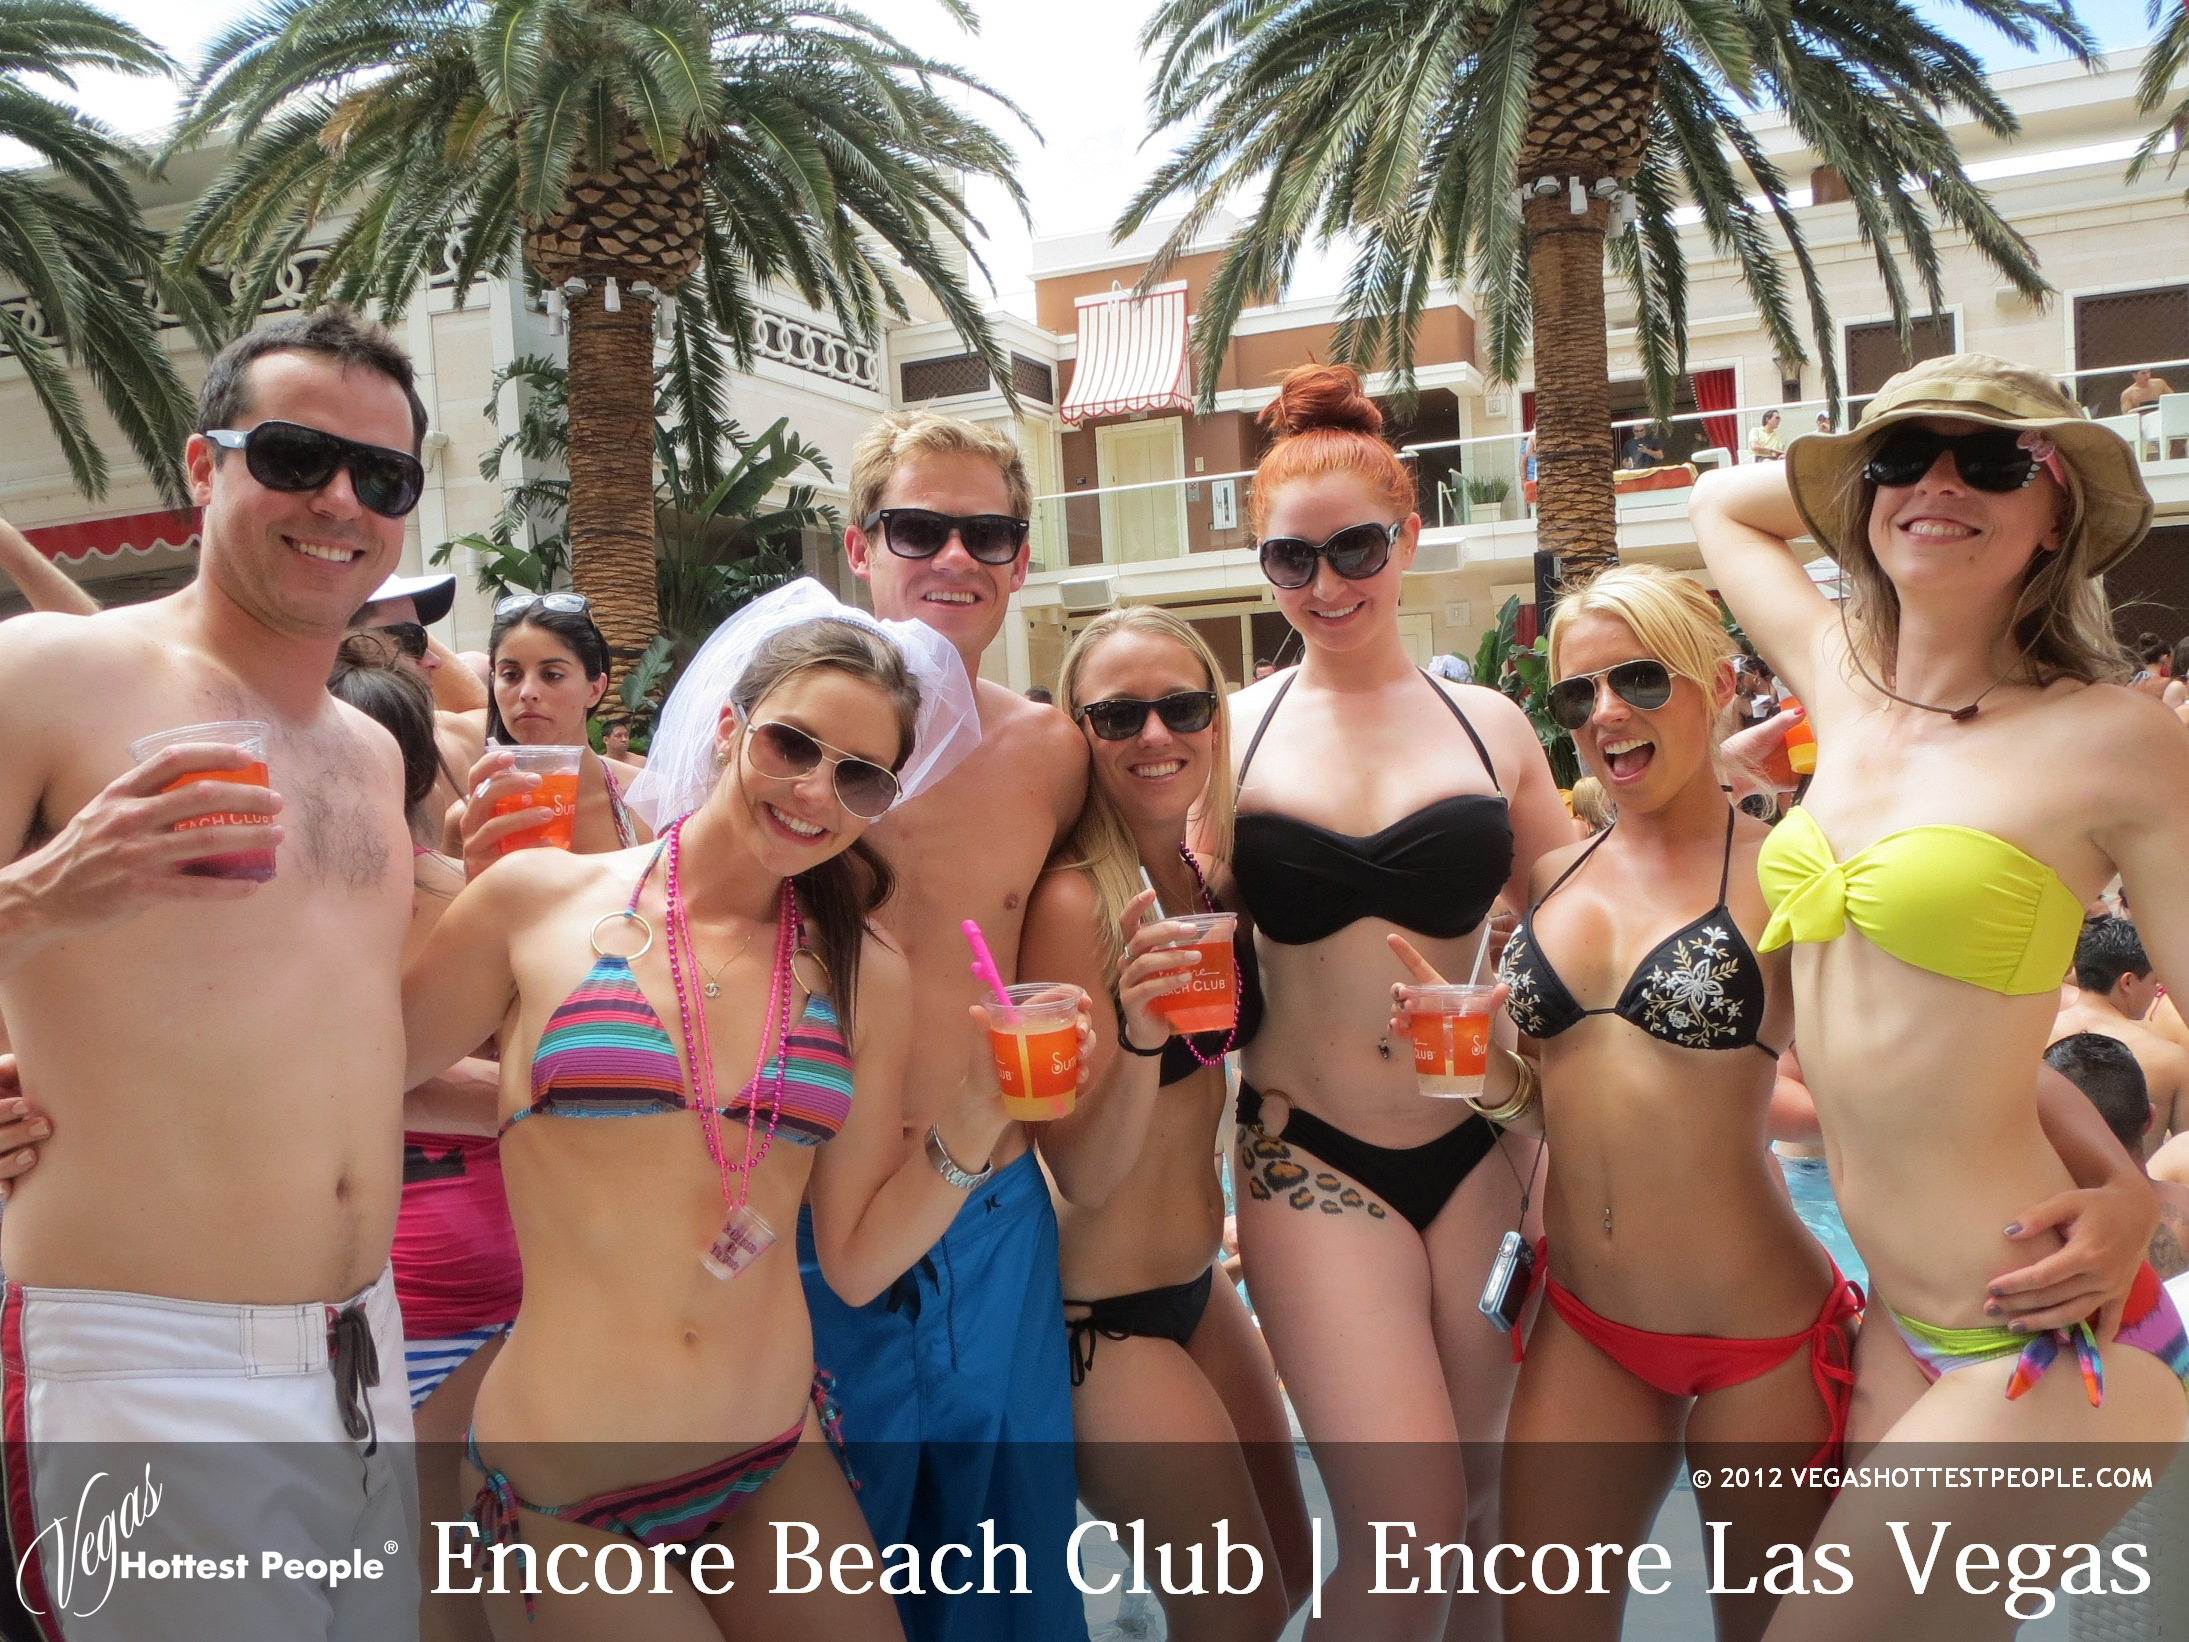 Wynn S Admiration Encore Beach Club 21 Vhp